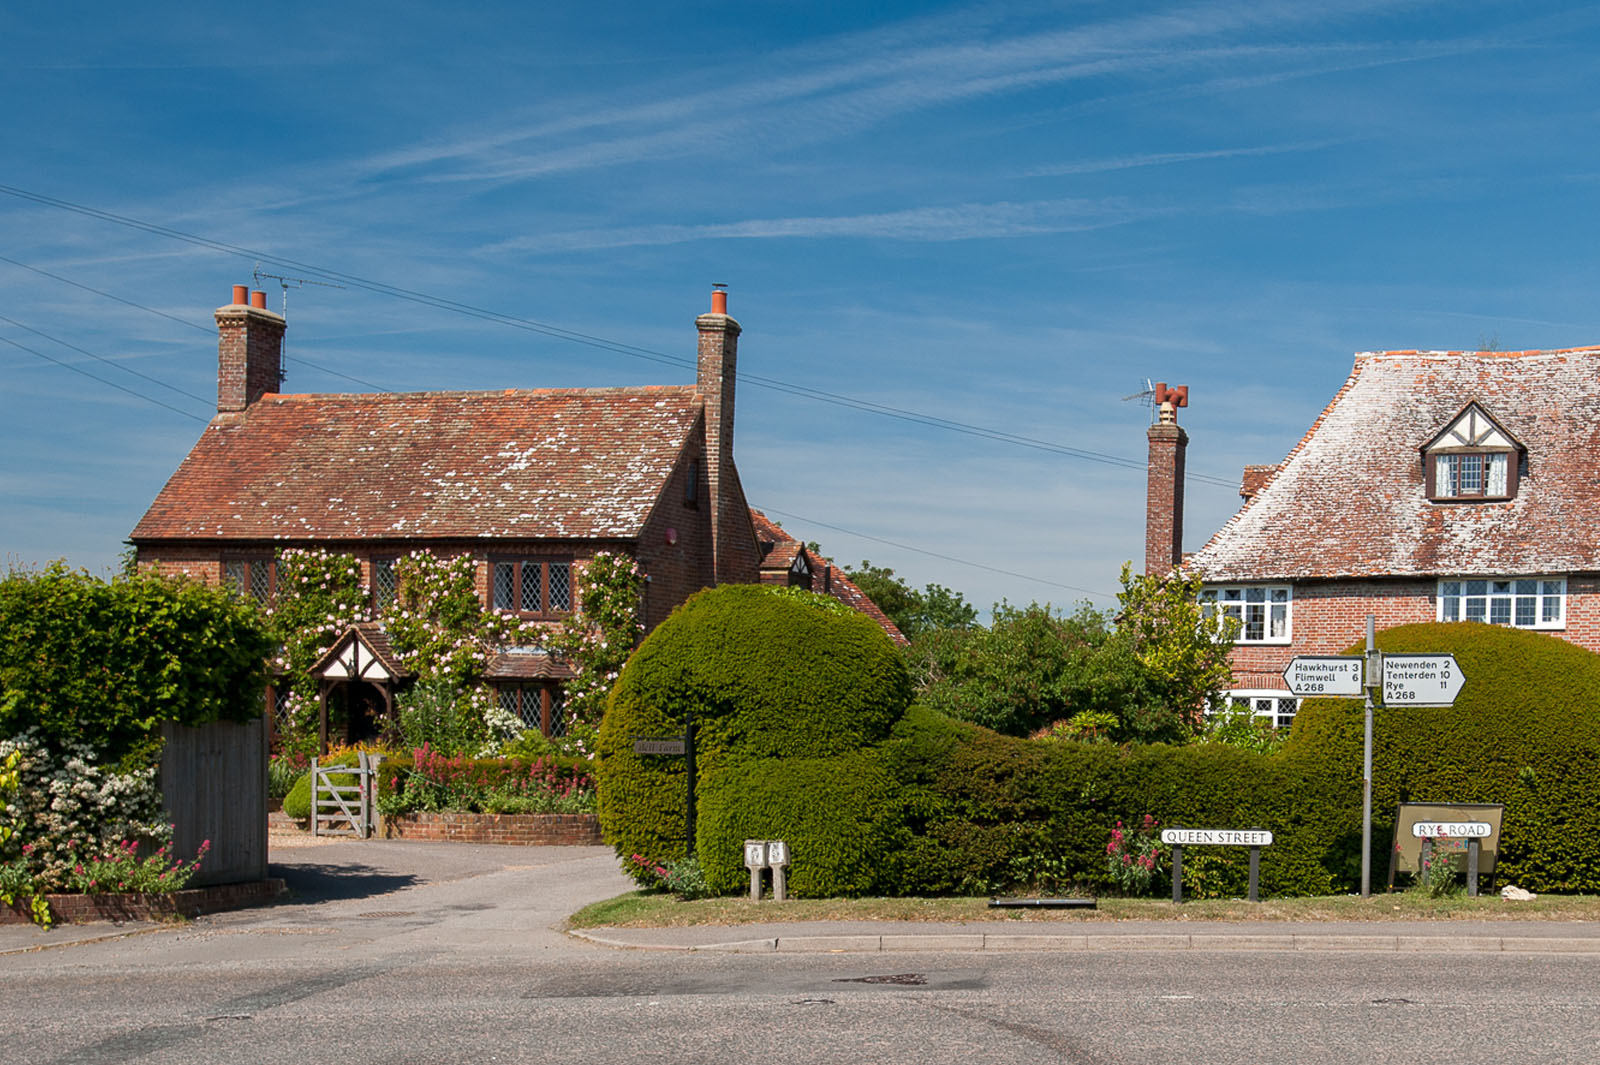 Wealden cottages & gardens to be seen on a country tour - By David Hodgkinson